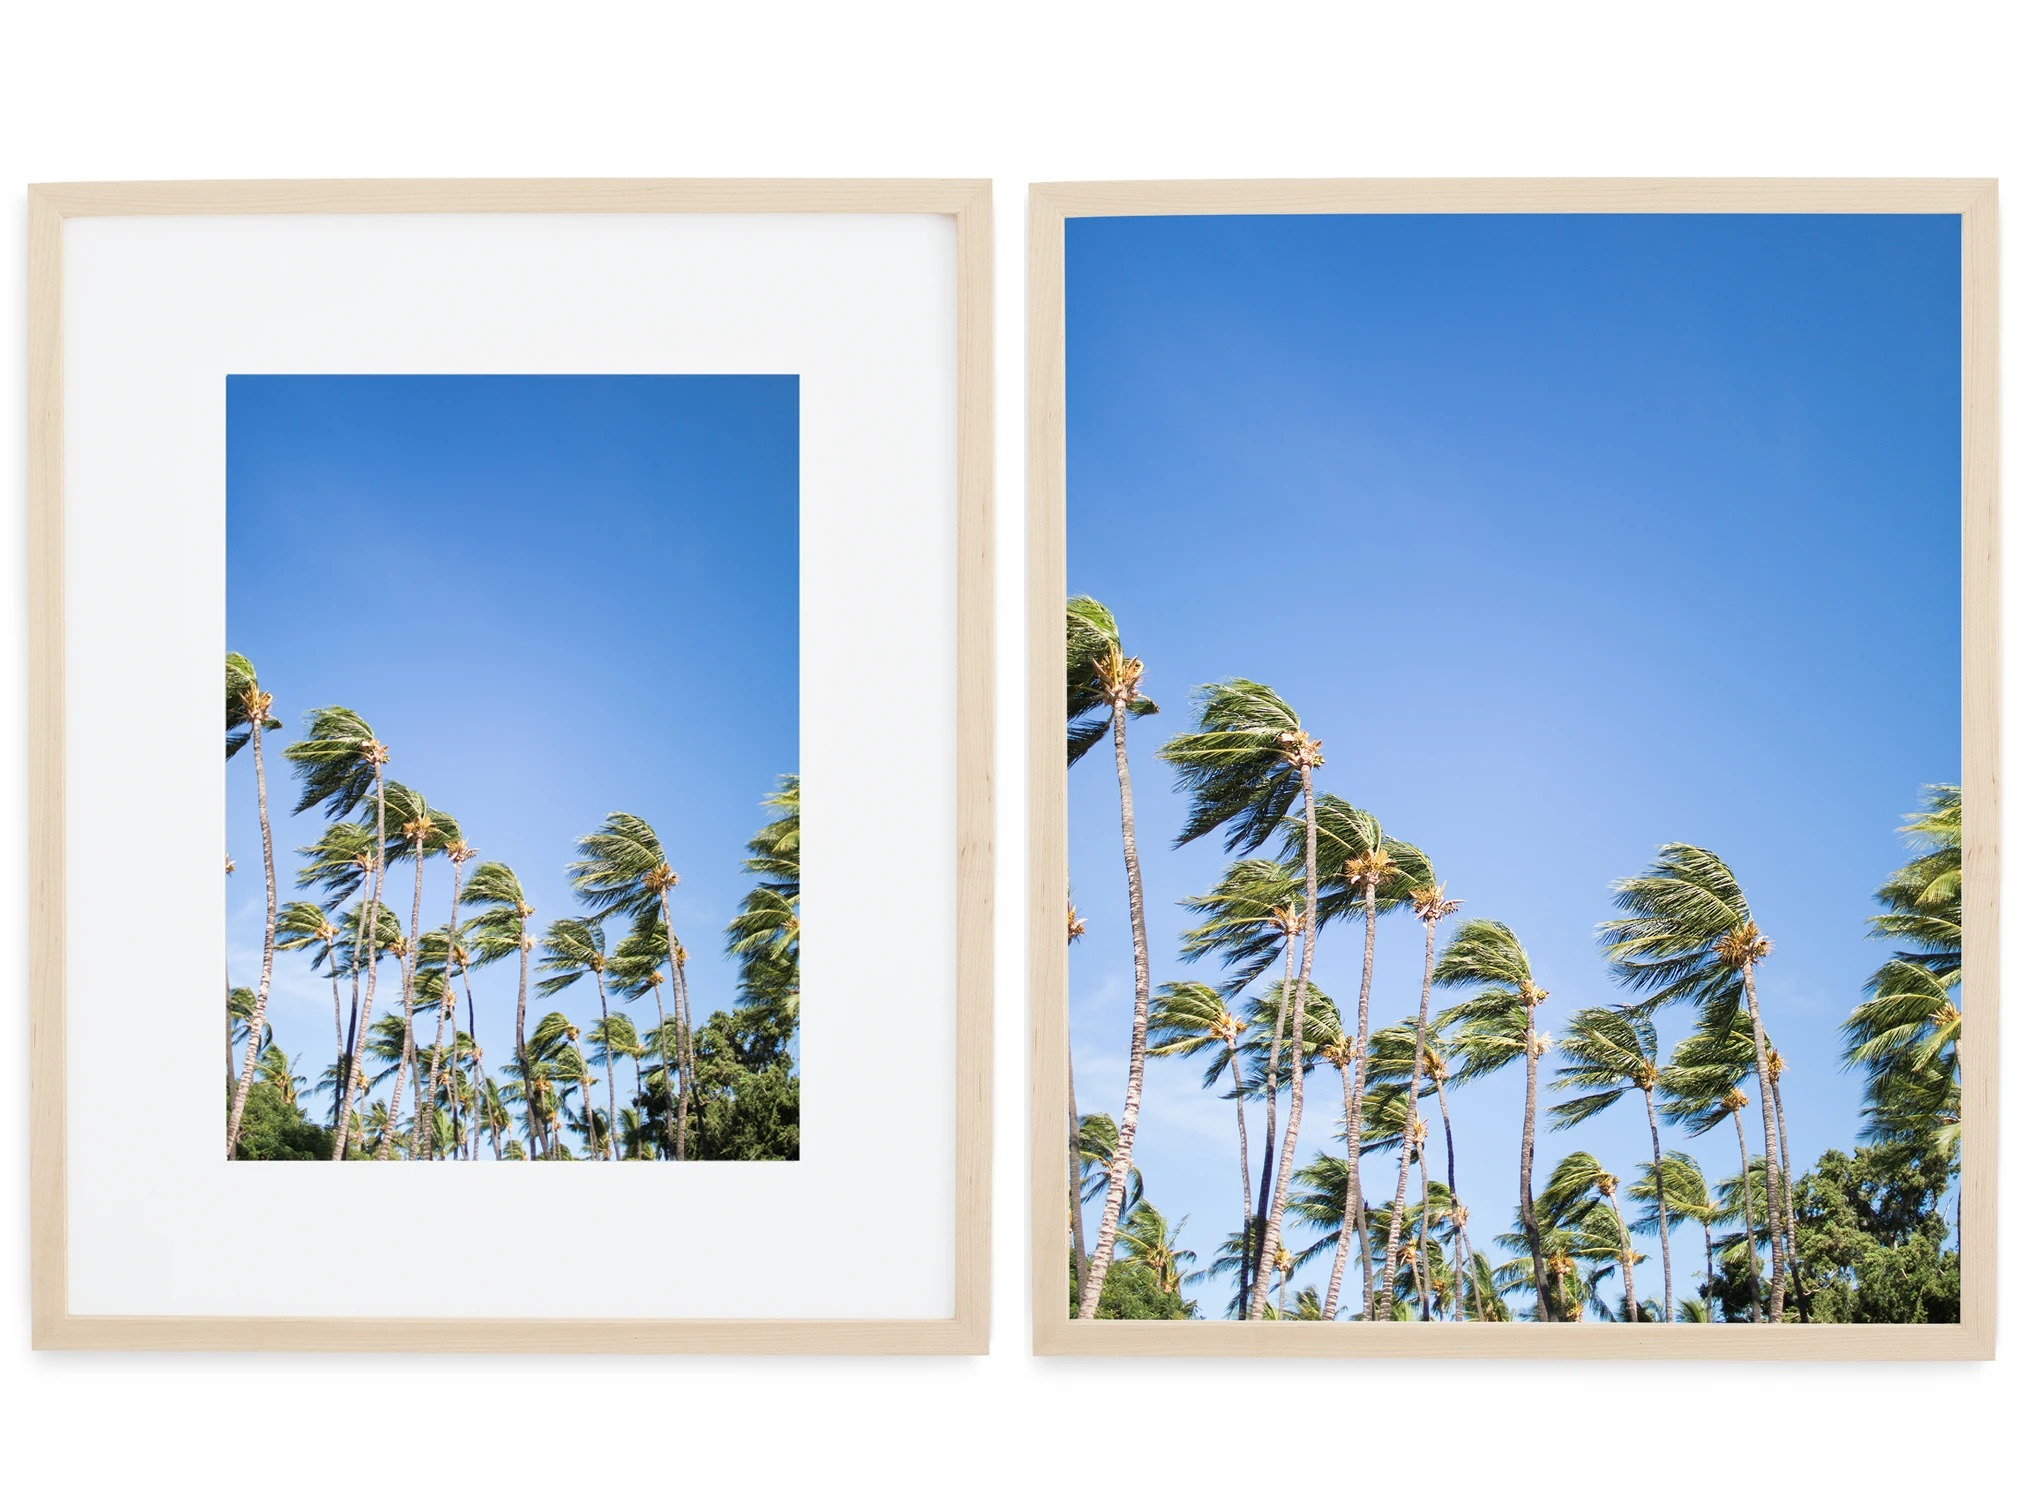 matted vs non-matted photo